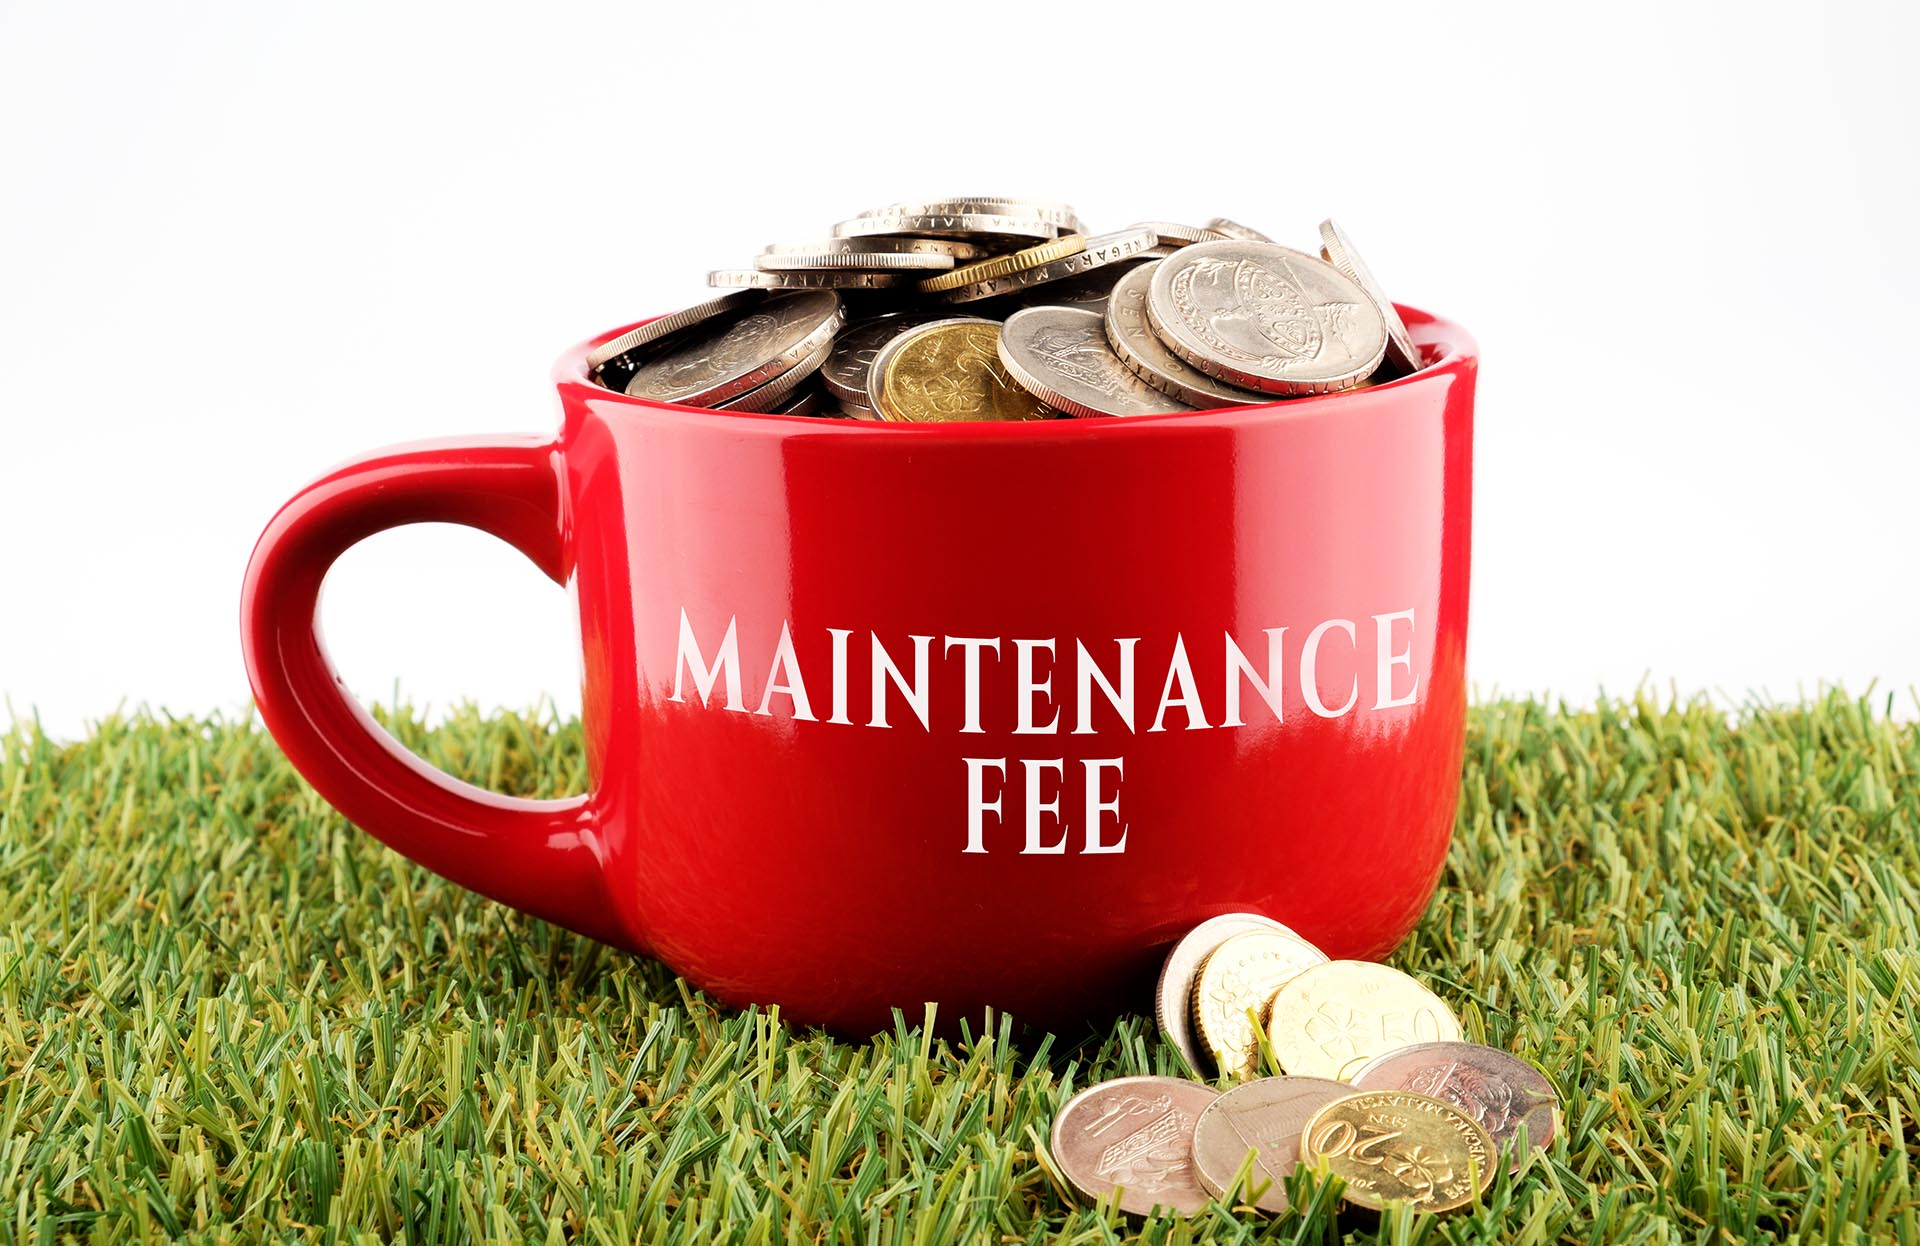 What are patent maintenance fees?